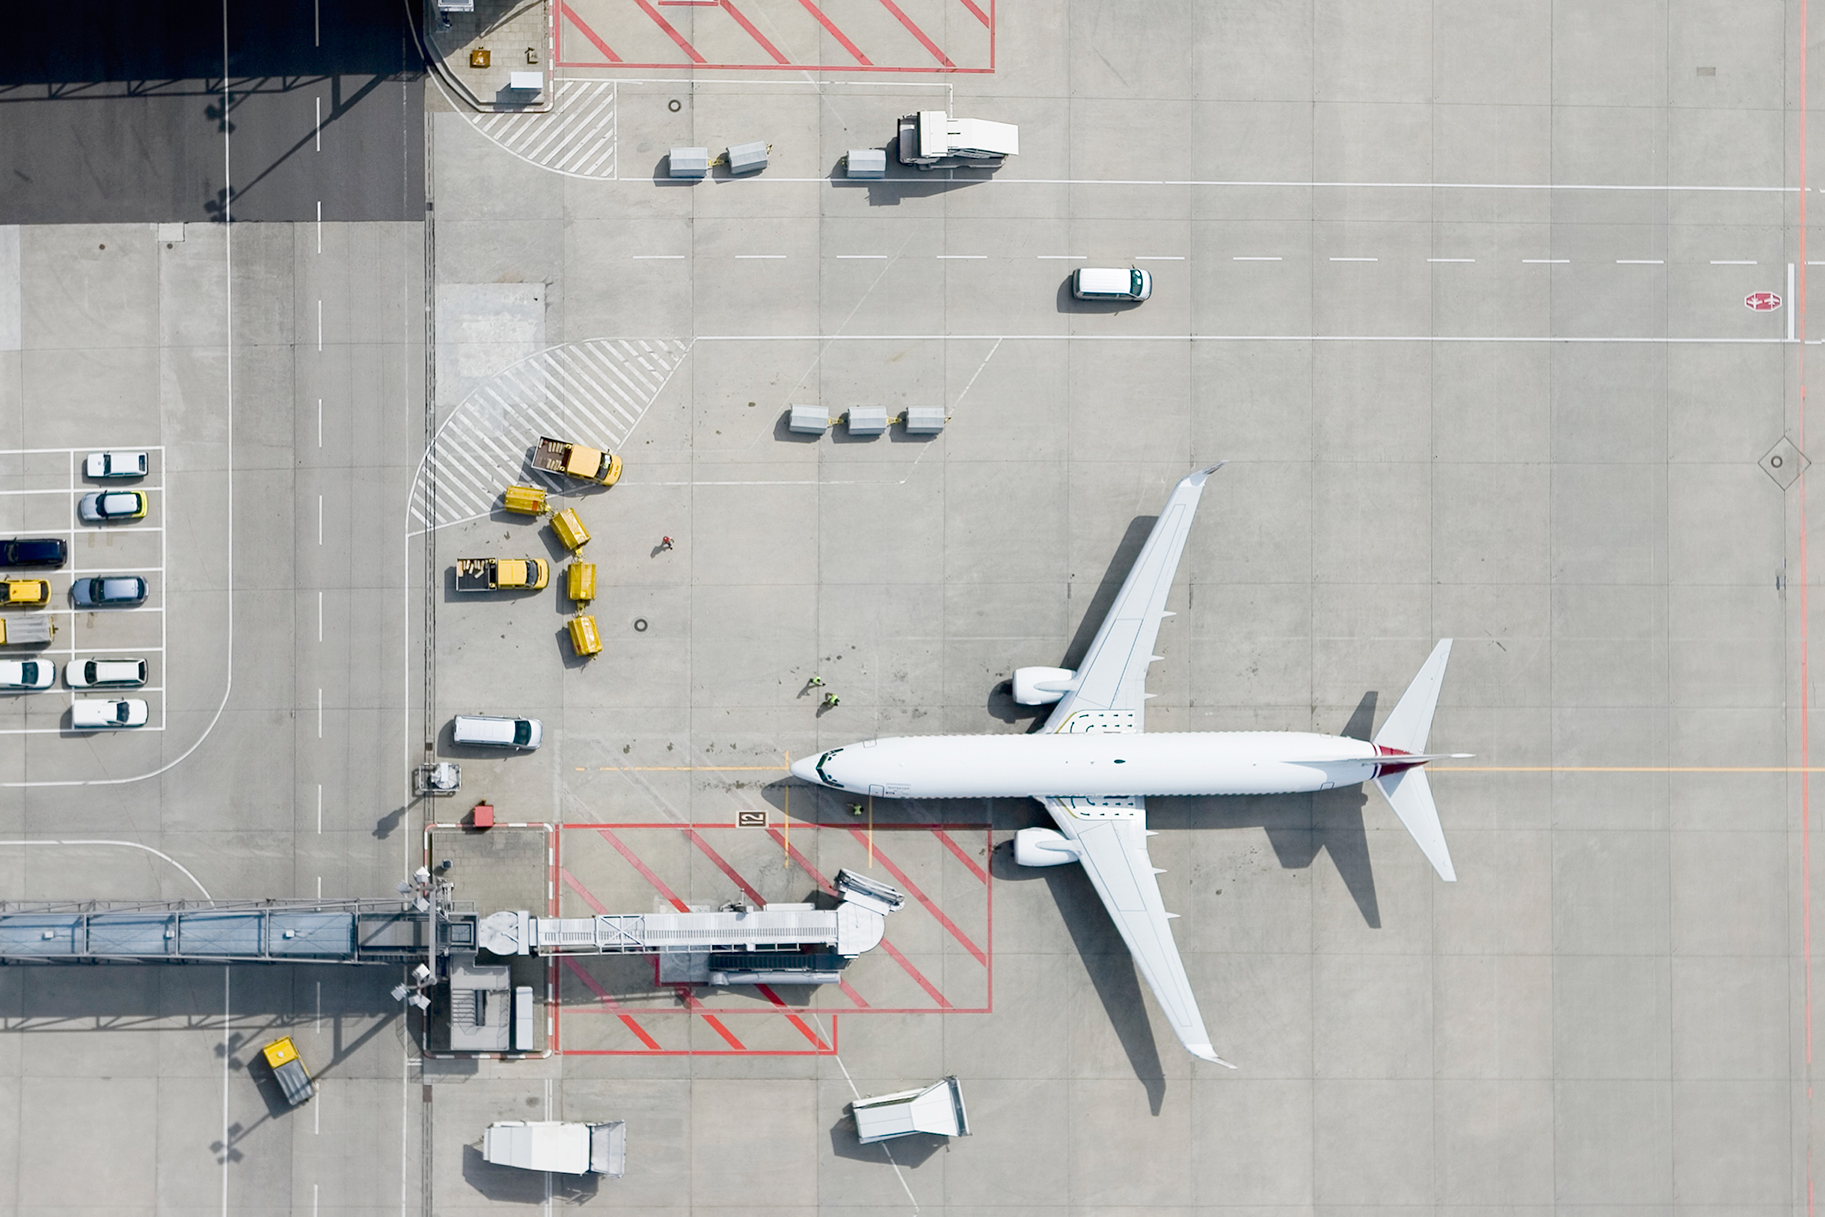 What Are Your Rights as a Passenger When You're Trapped in a Plane on the Tarmac?